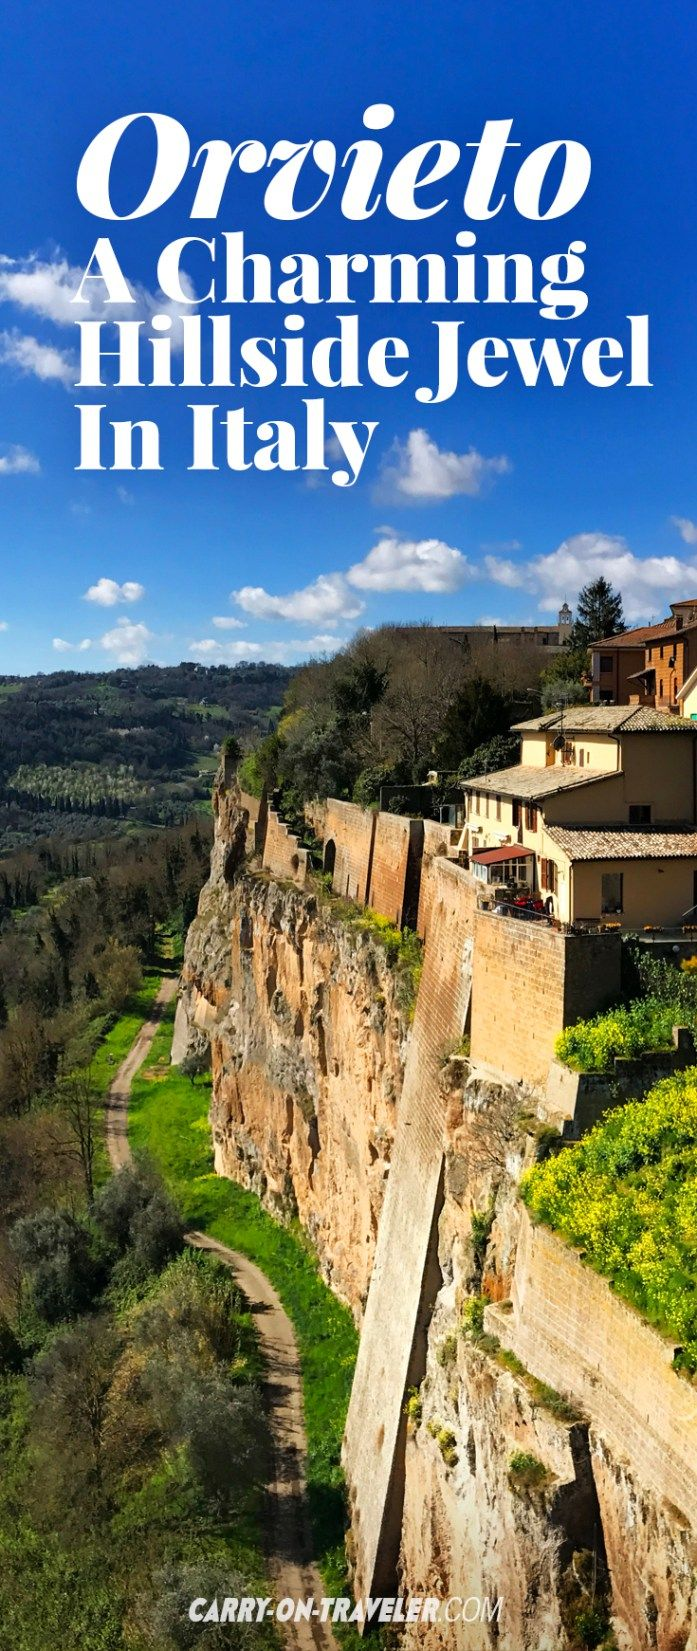 If you are looking for an Italian hilltop town that checks all of the boxes for picture-perfect charm, unique sites, interesting history and delicious food, or if you just need a quick break from the chaos that is Rome, visit Orvieto, a charming hilltop jewel in Italy.